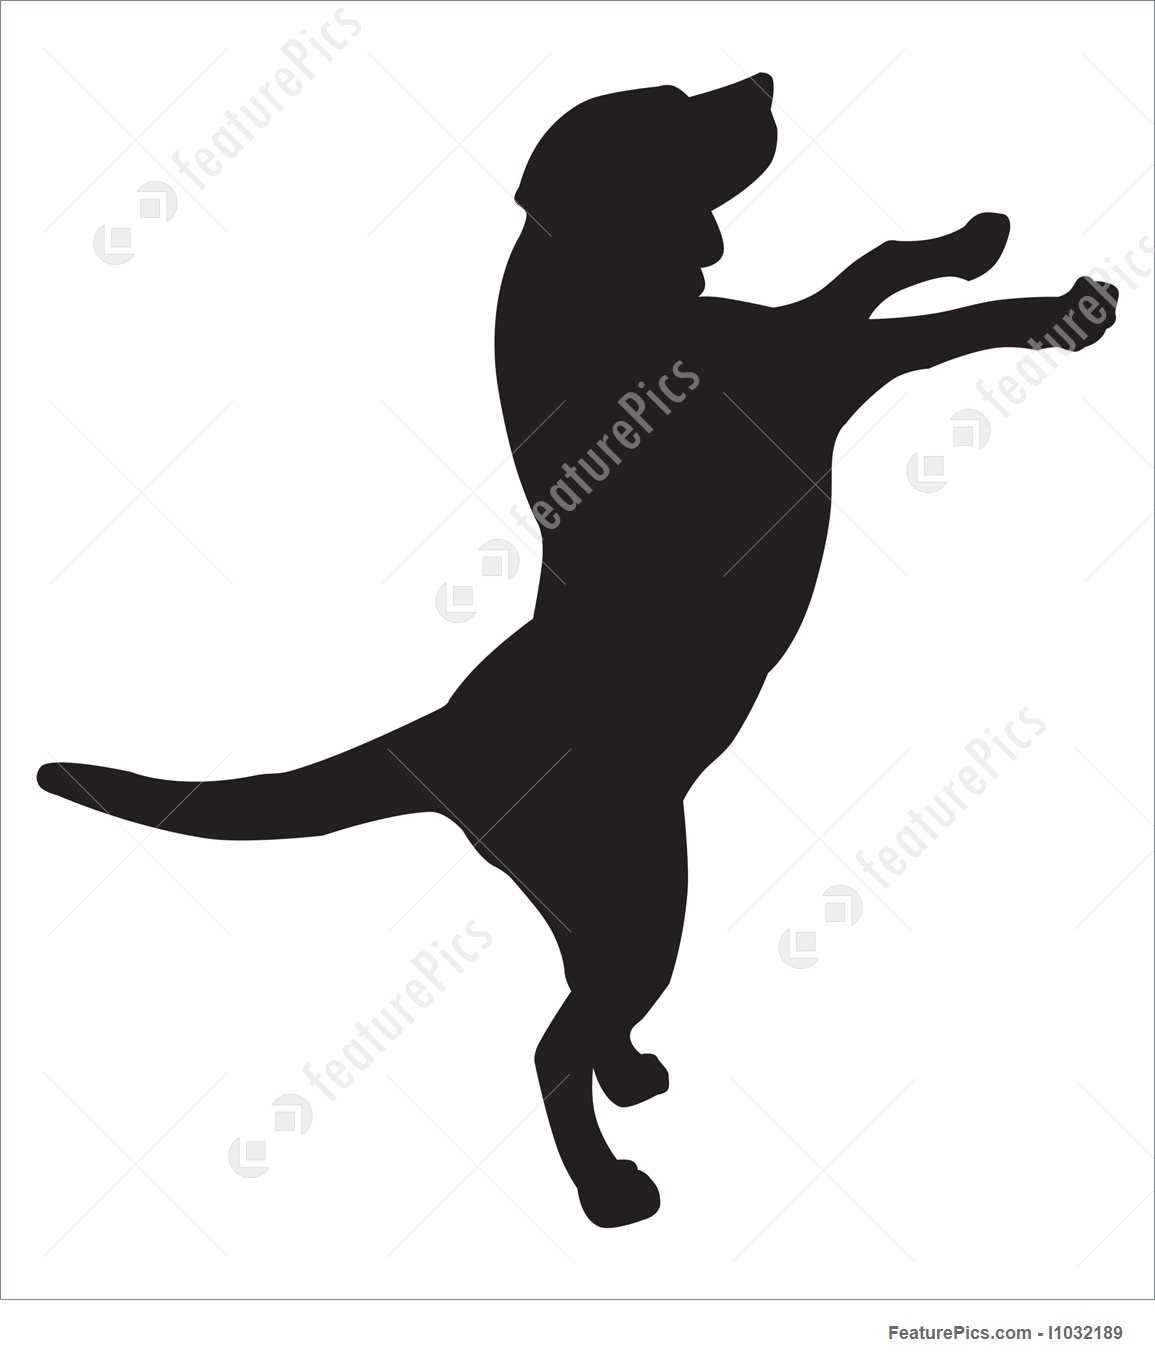 1155x1360 Illustration Of Dog Silhouette